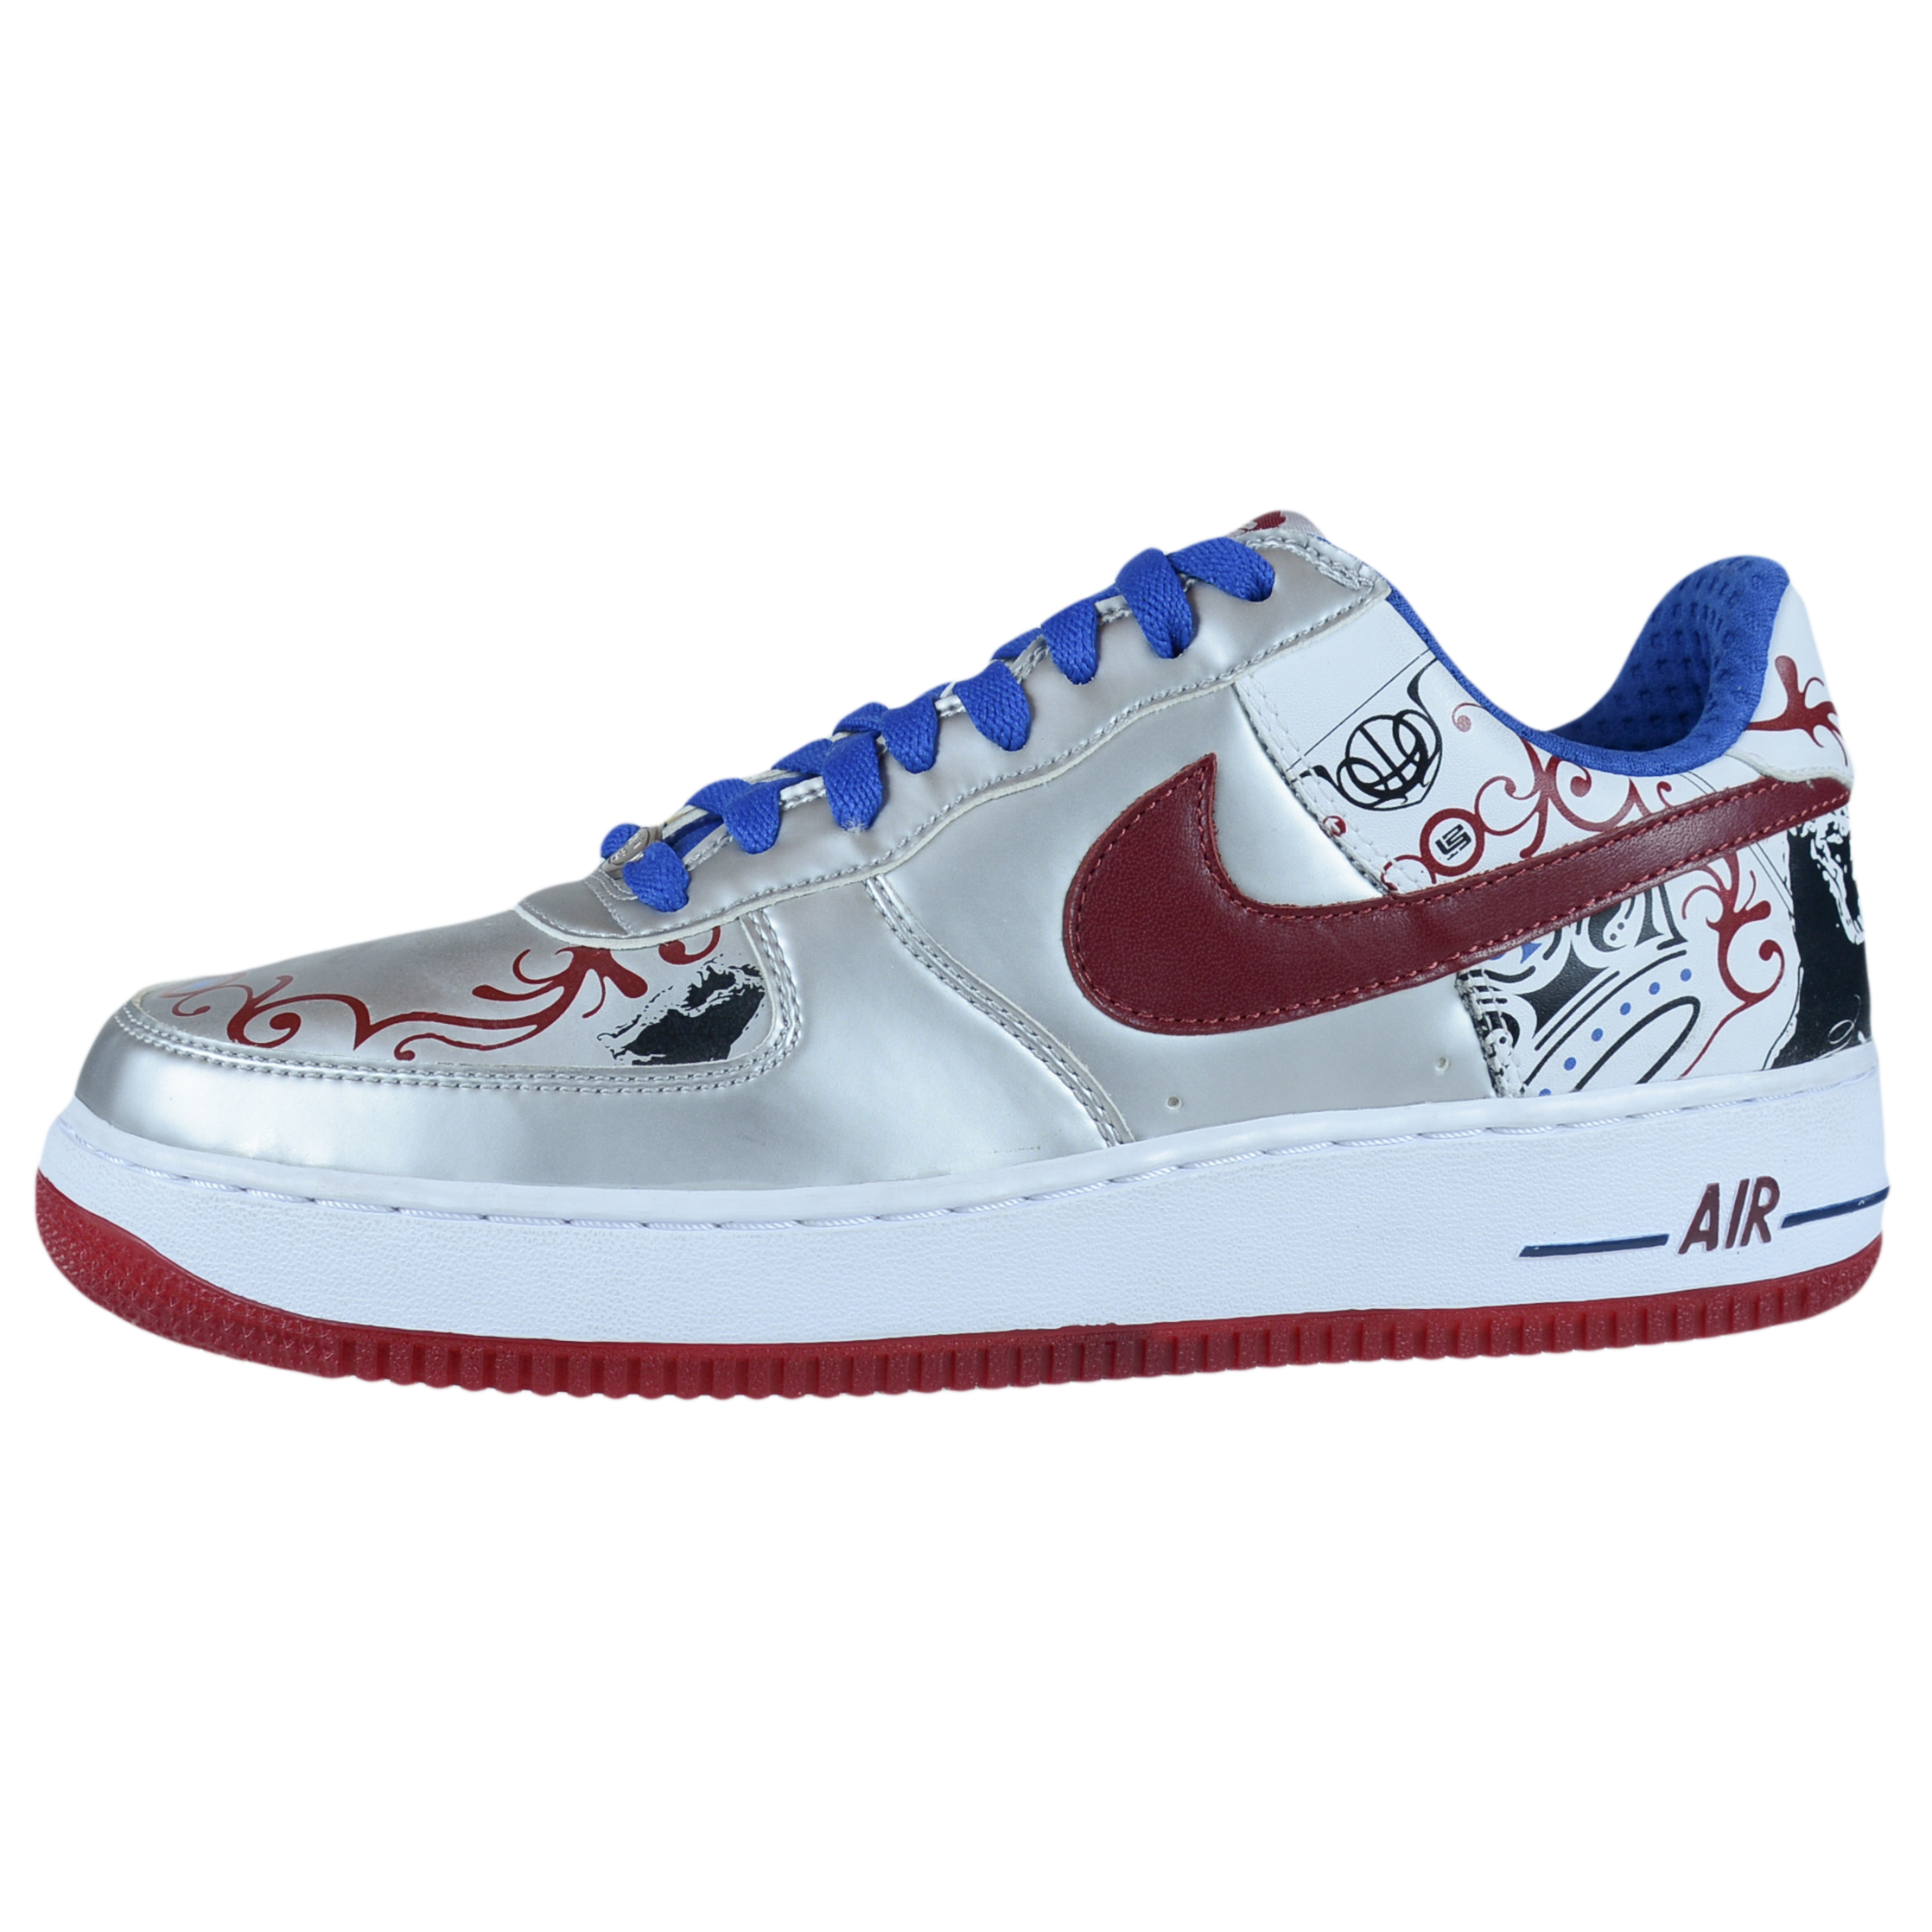 e1d6fa0717d NIKE AIR FORCE 1 PREMIUM LEBRON COLLECTION ROYALE SILVER 313985 061 SIZE 9